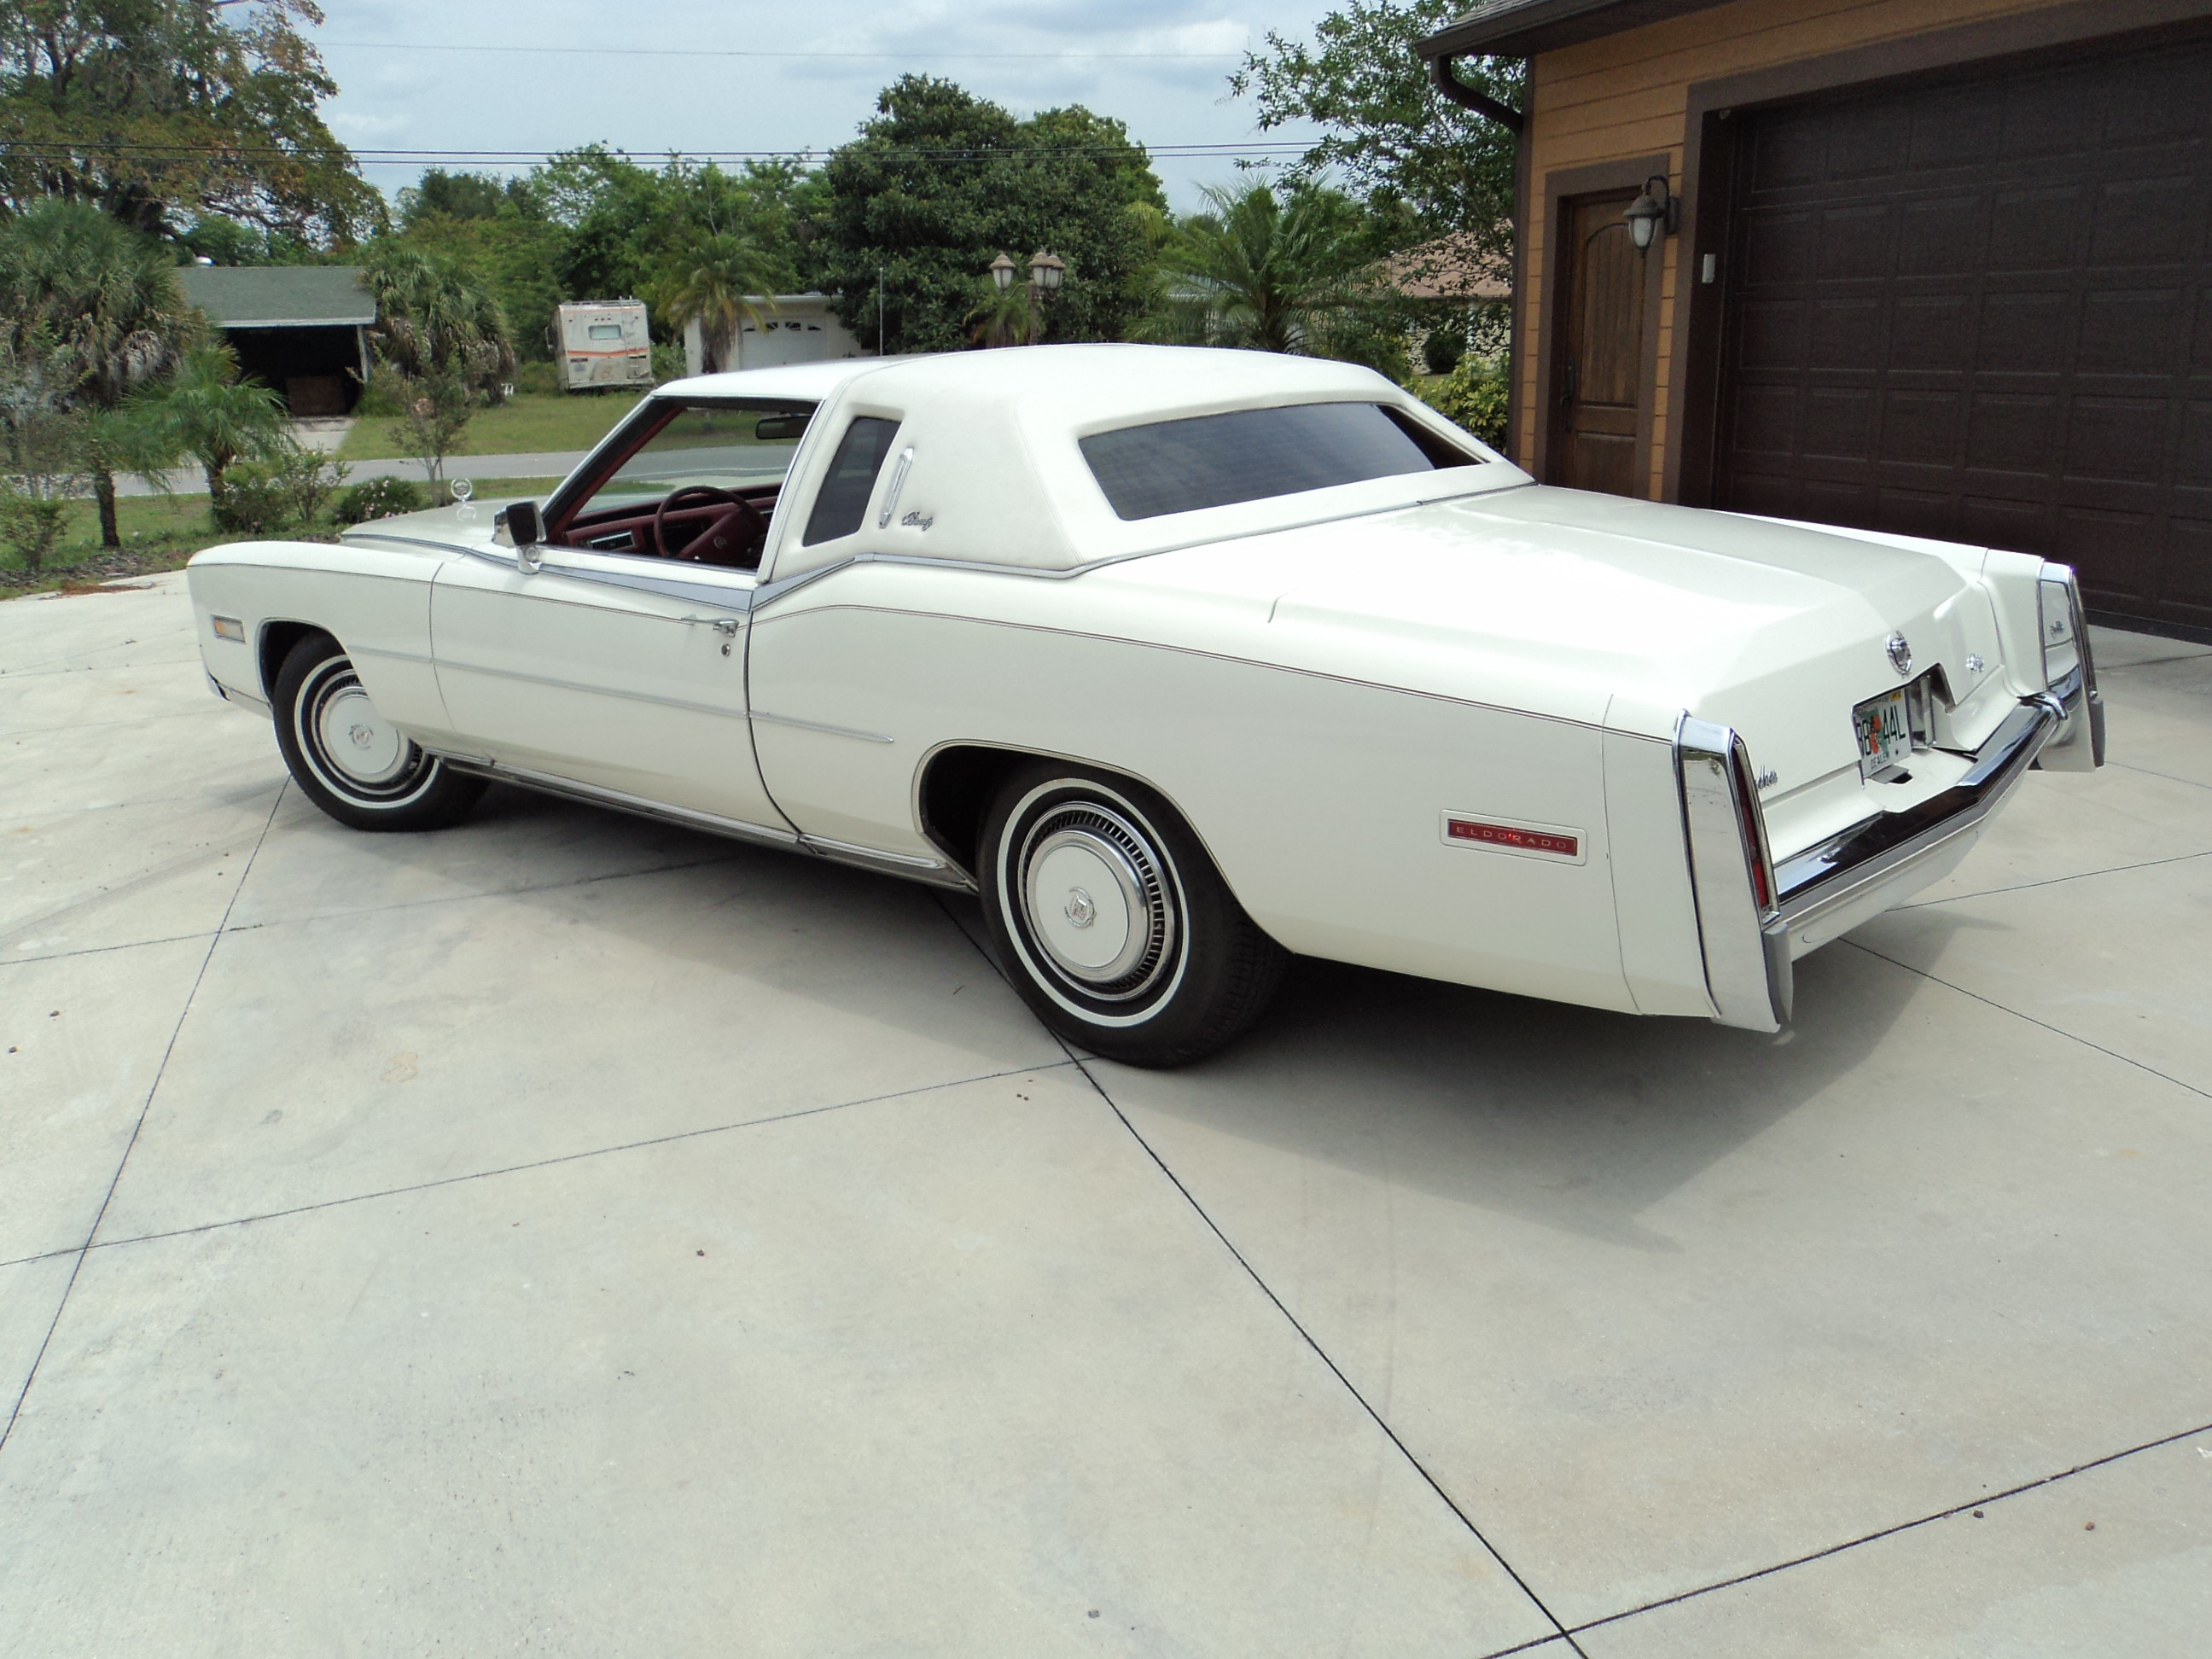 1978 Cadillac Eldorado Information And Photos Momentcar Sedan Deville 9